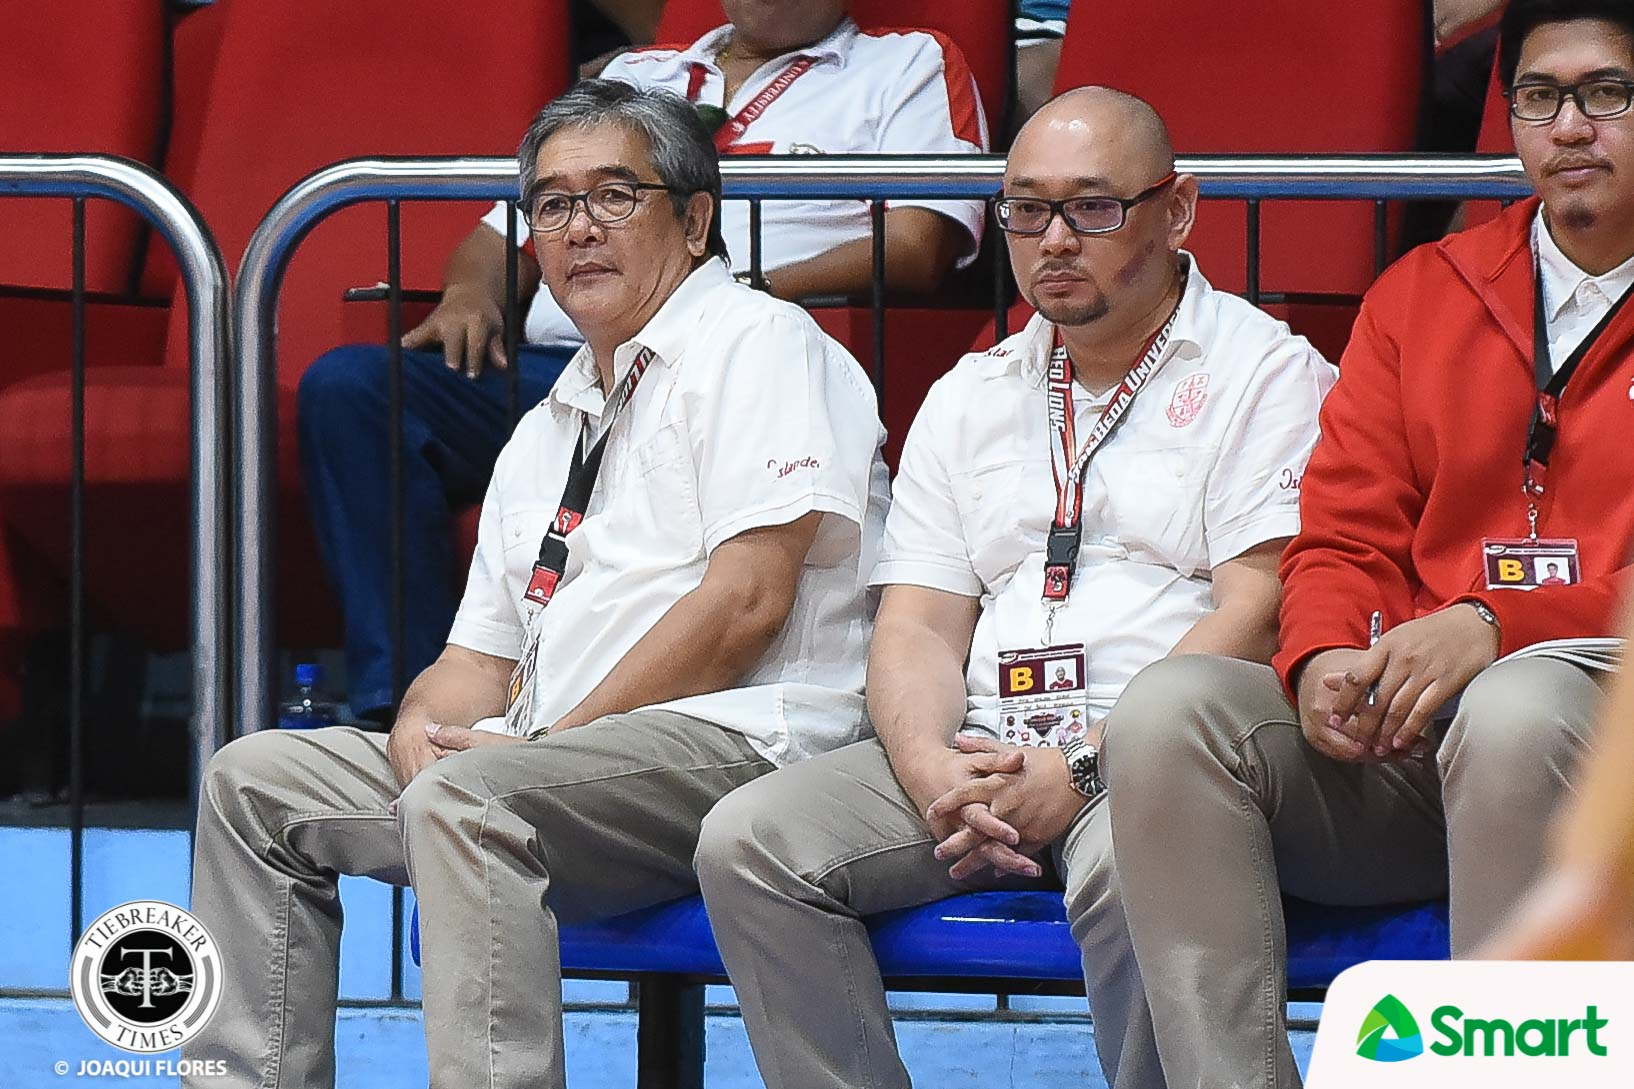 Tiebreaker Times San Beda assistant Cholo Martin set to be named as Arellano head coach AU Basketball NCAA News SBC  San Beda Seniors Basketball NCAA Season 94 Seniors Basketball NCAA Season 94 Cholo Martin Arellano Seniors Basketball